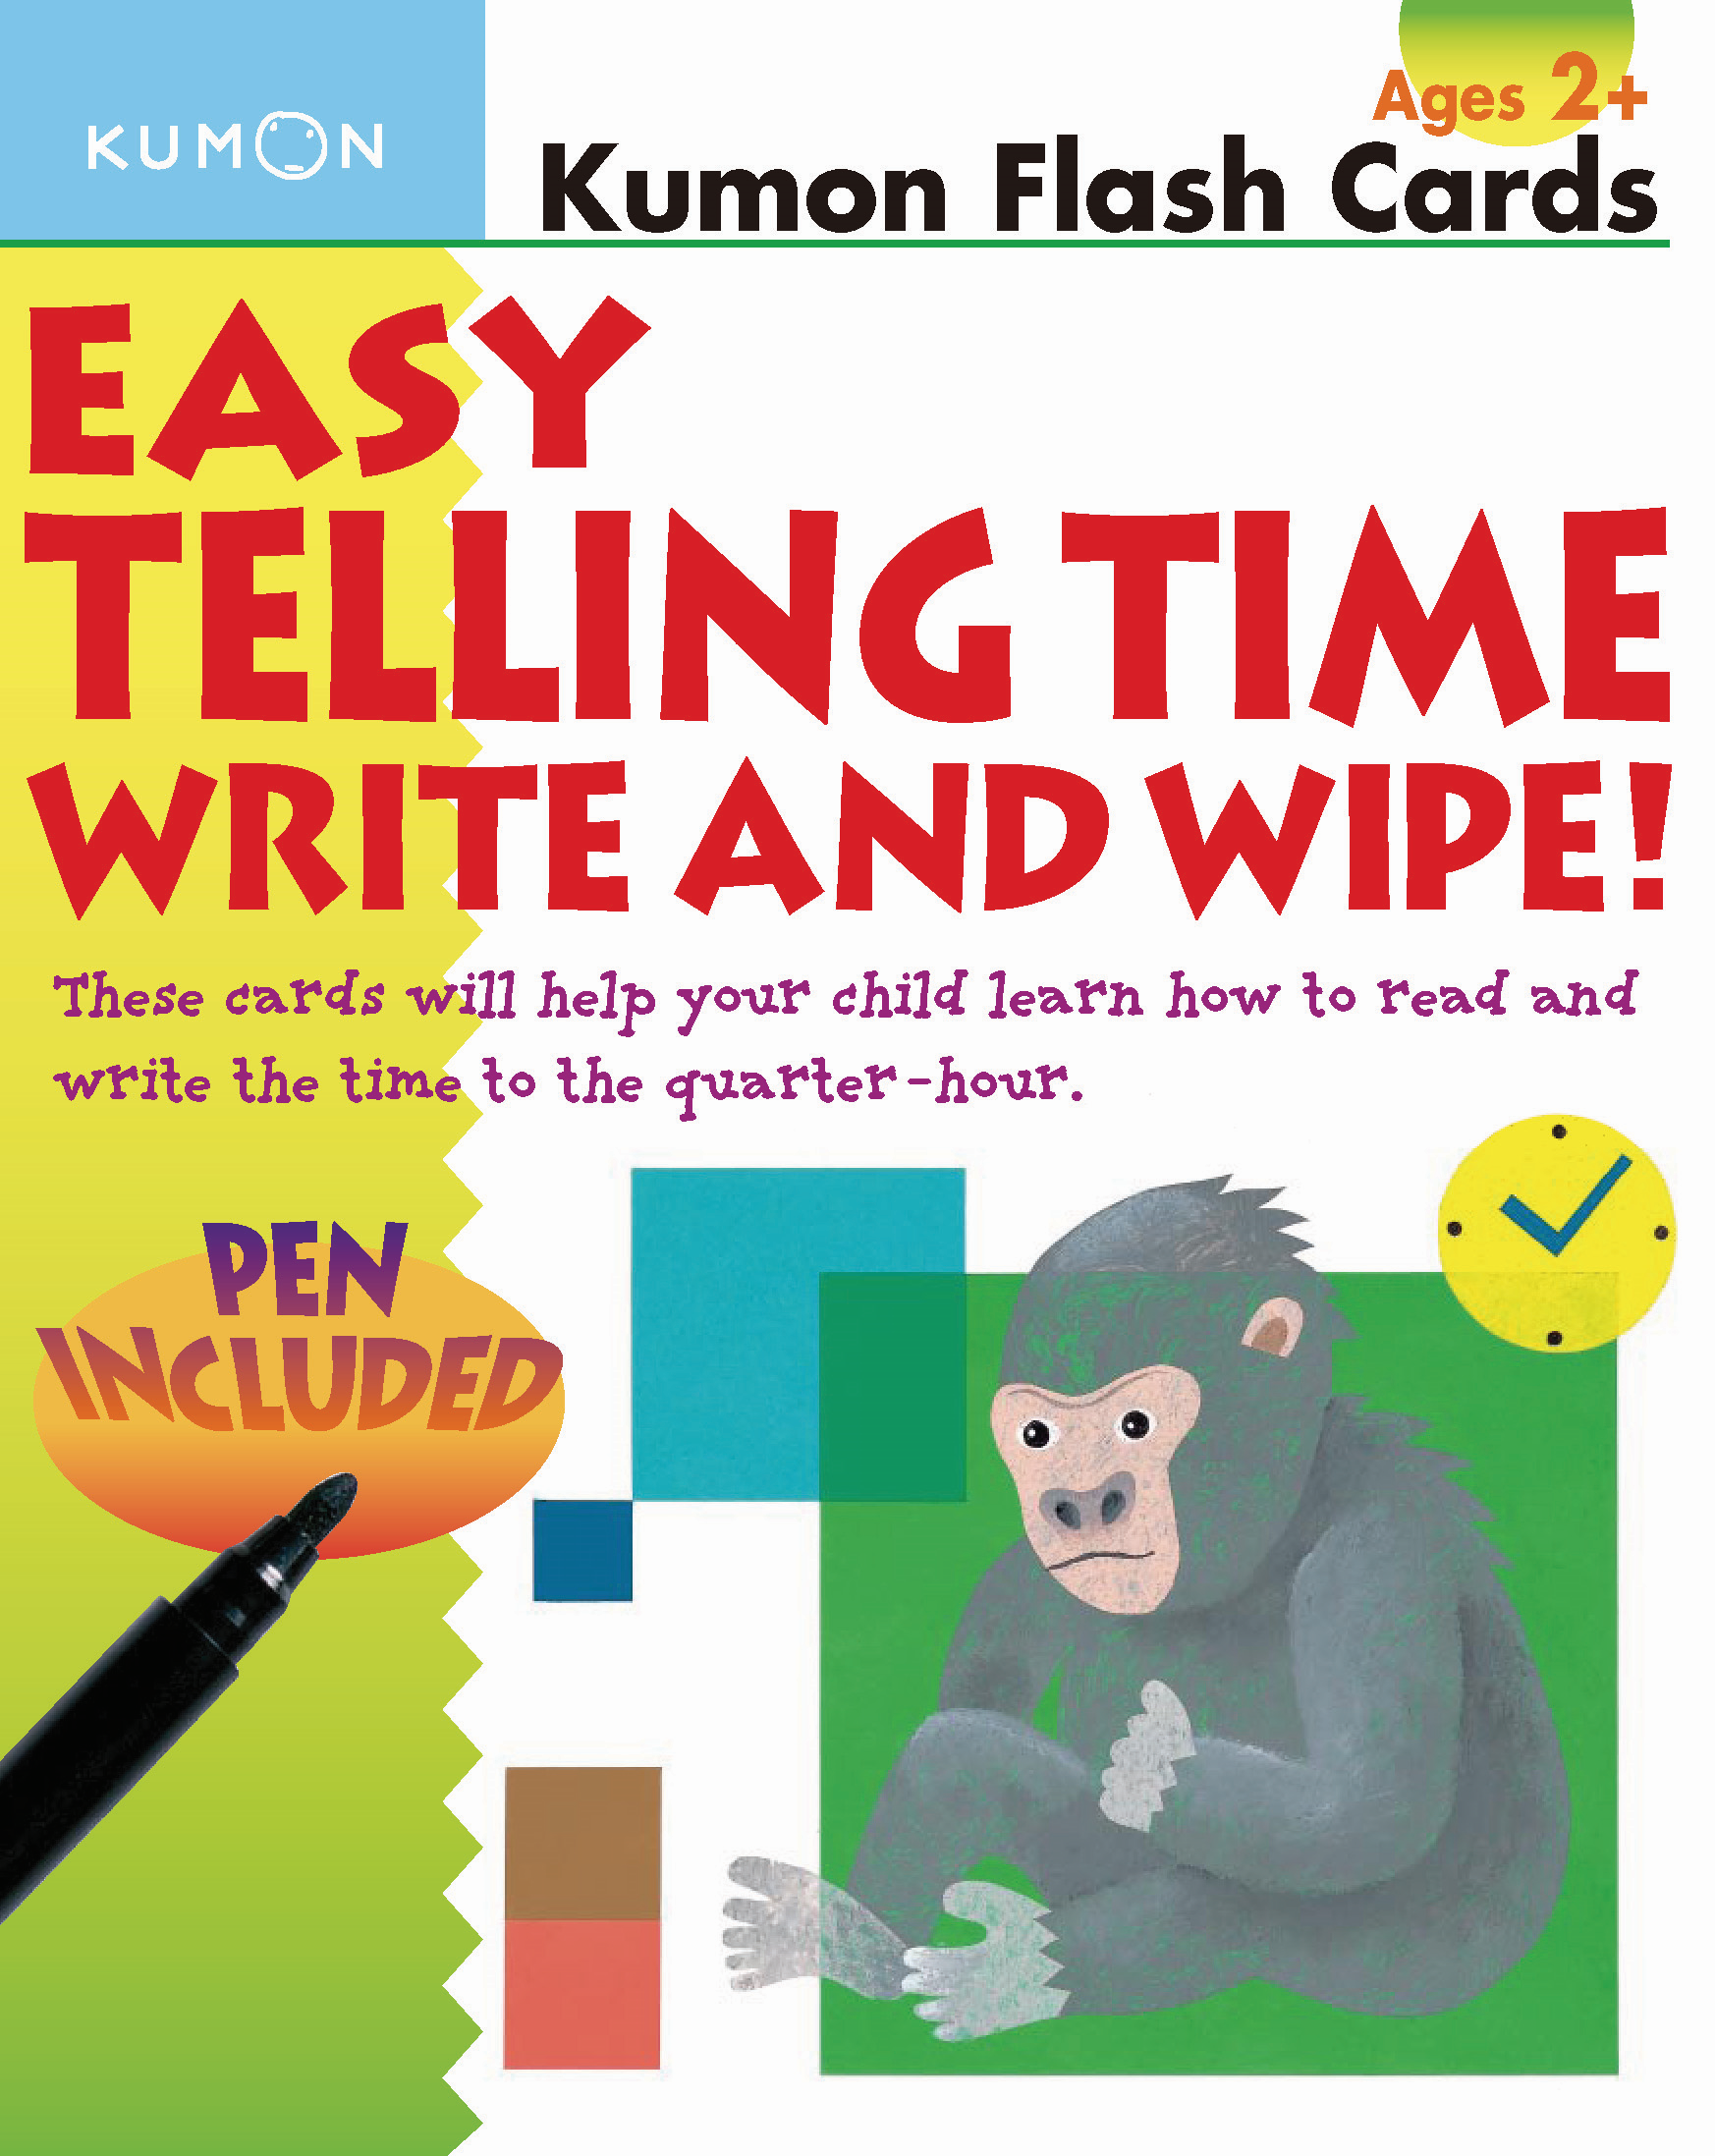 Easy Telling Time: Write And Wipe! | Kumon Publishing